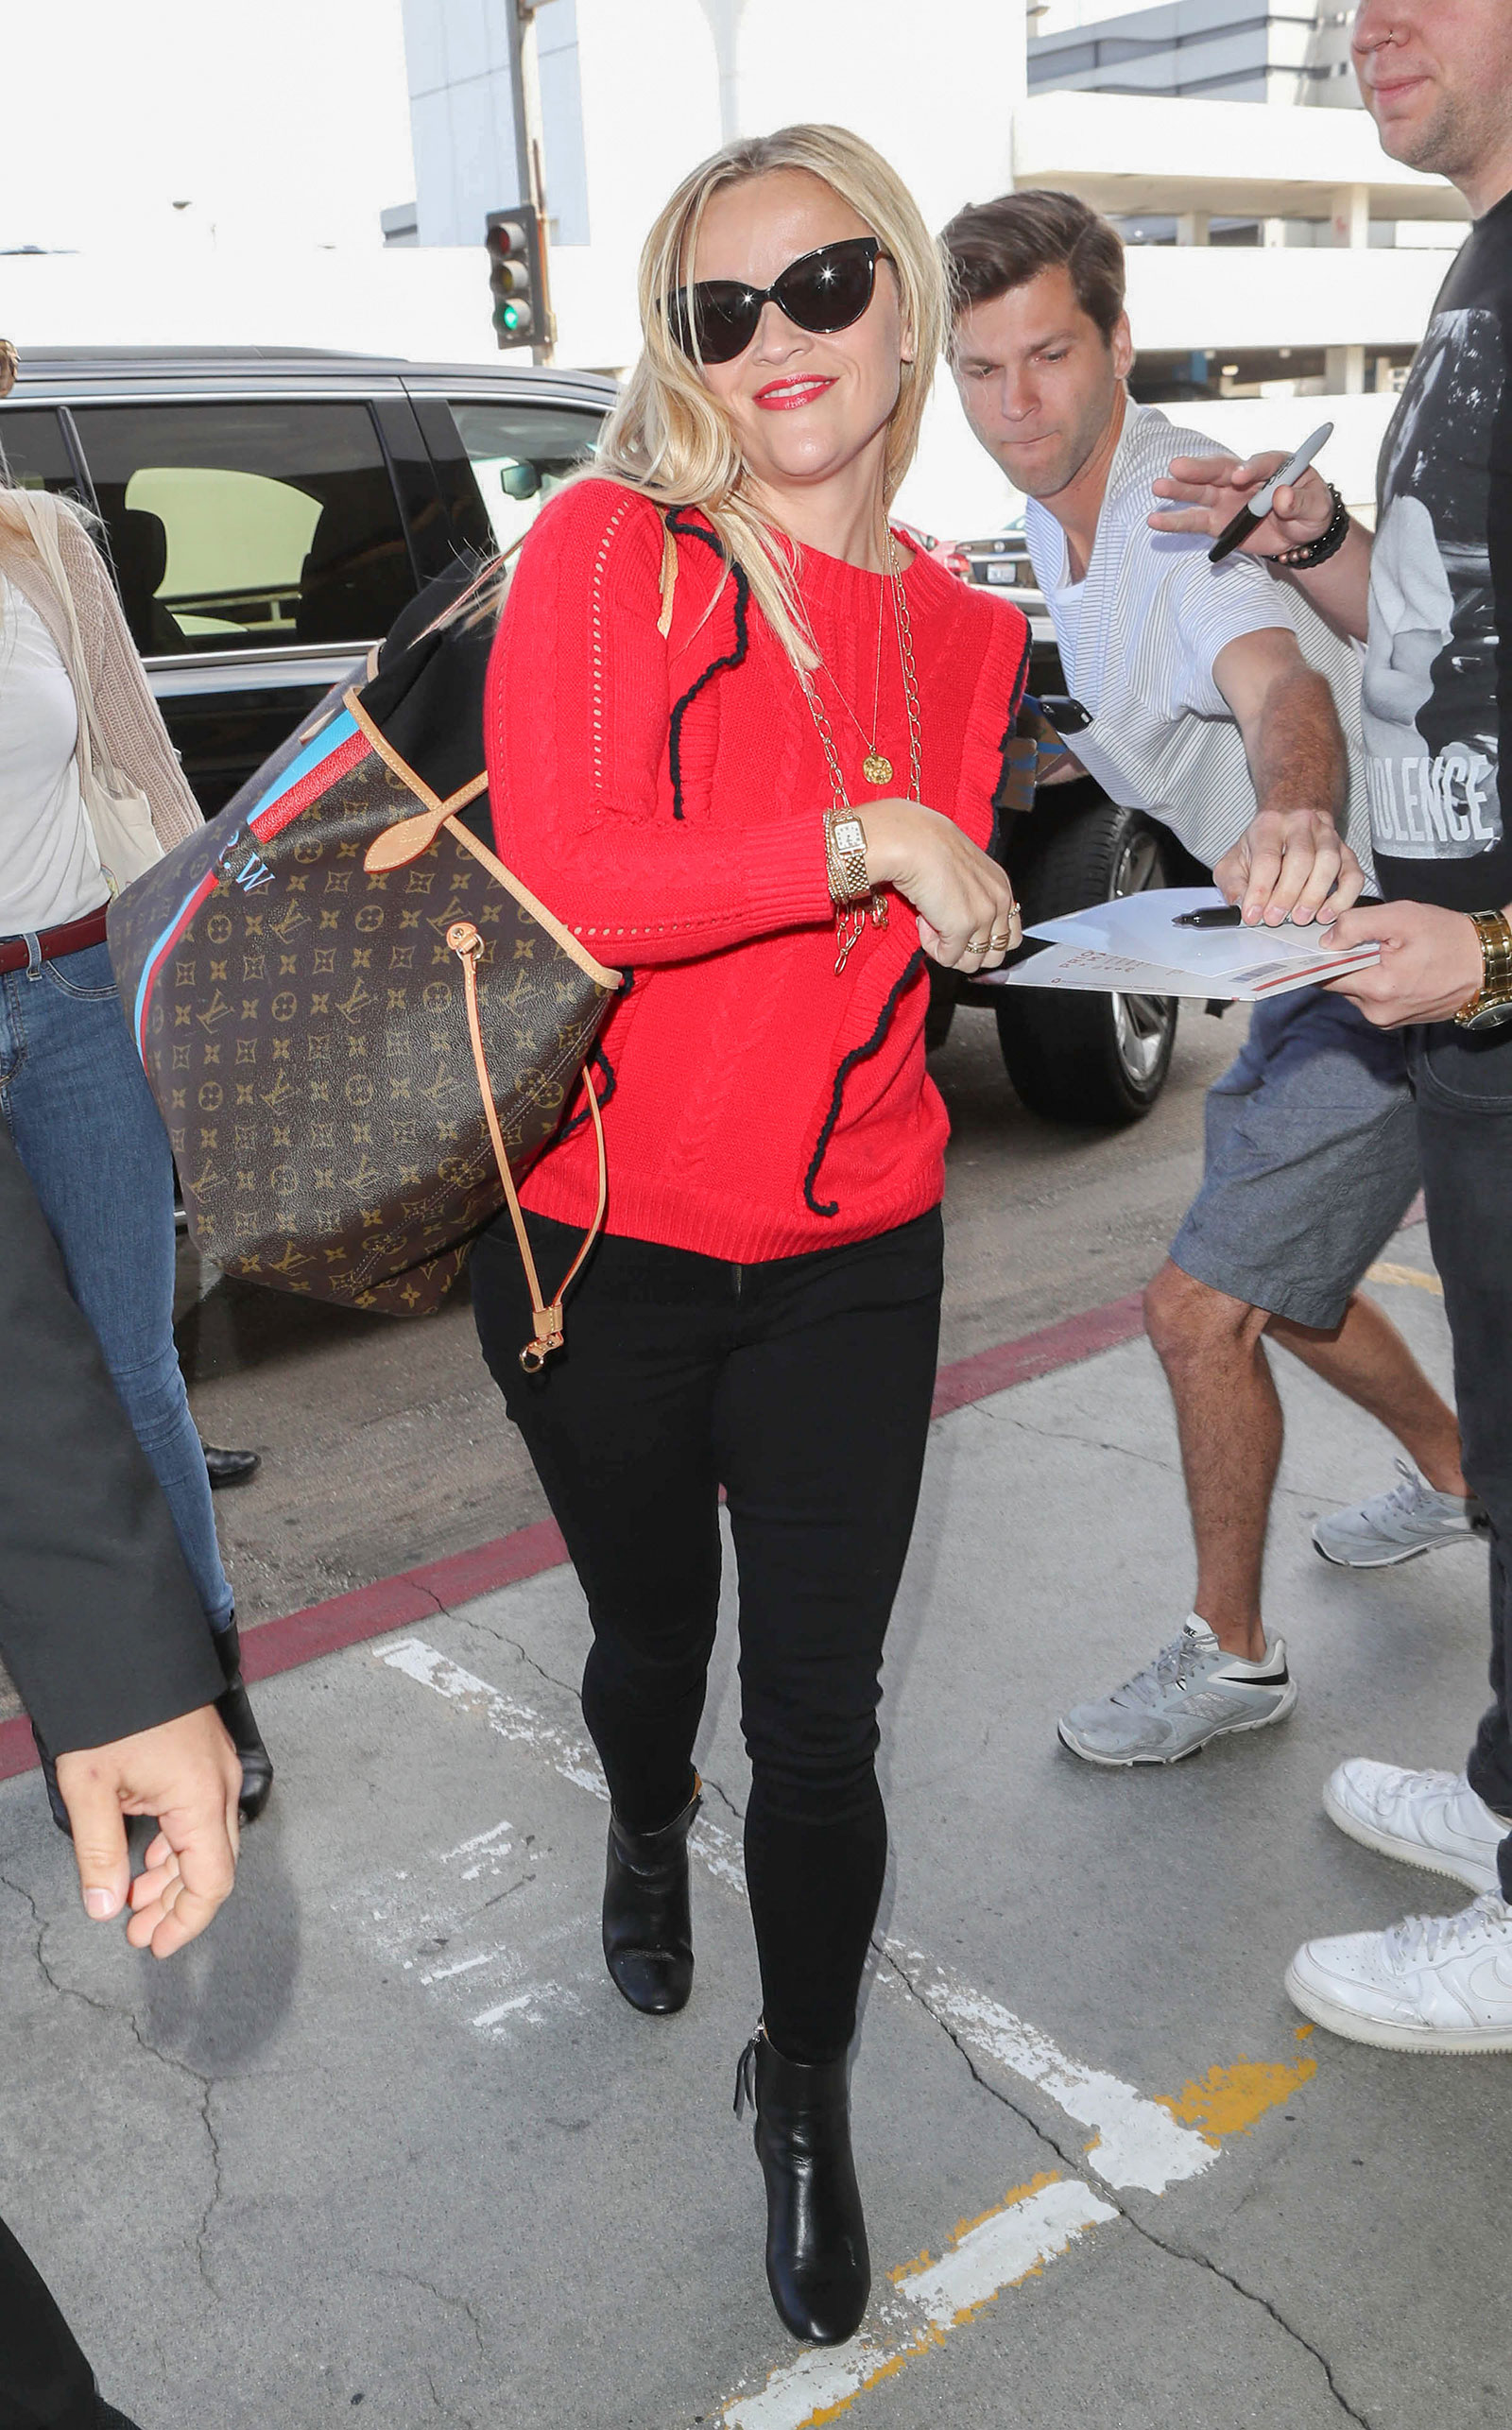 Reese Witherspoon wears a red ruffle sweater by Draper James and carries a Louis Vuitton bag while traveling through LAX.